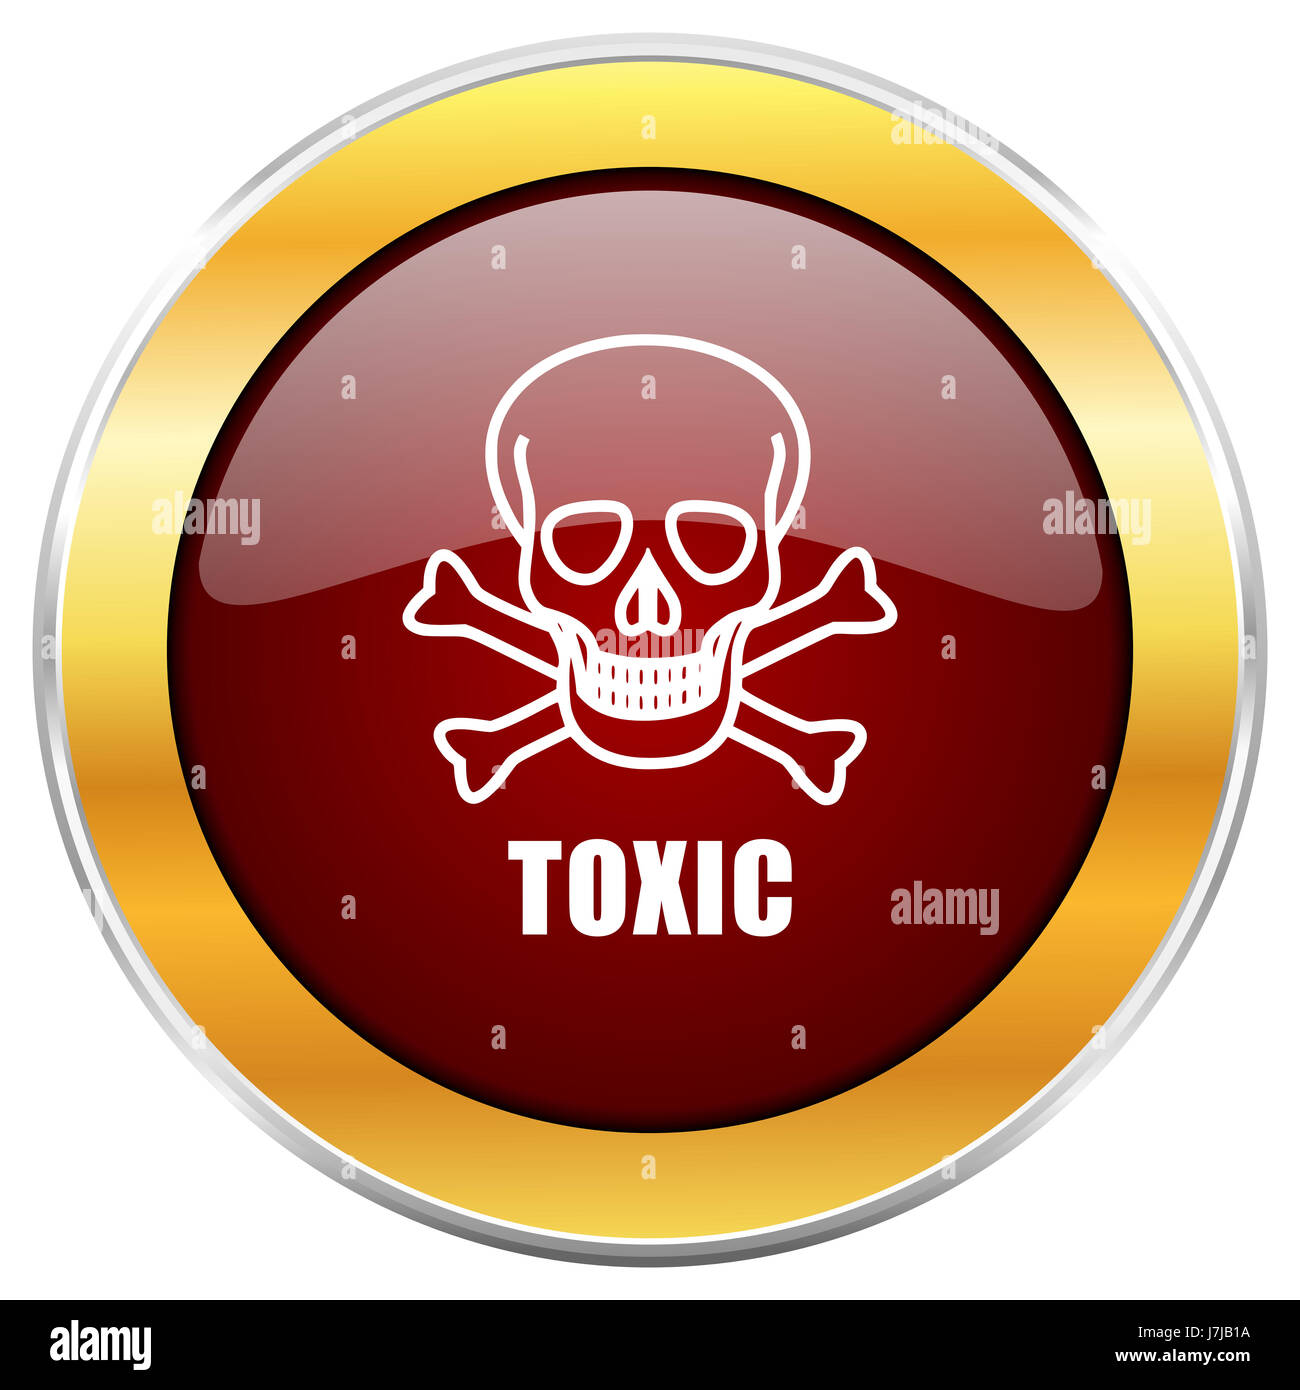 Toxic skull red web icon with golden border isolated on white background. Round glossy button. Stock Photo